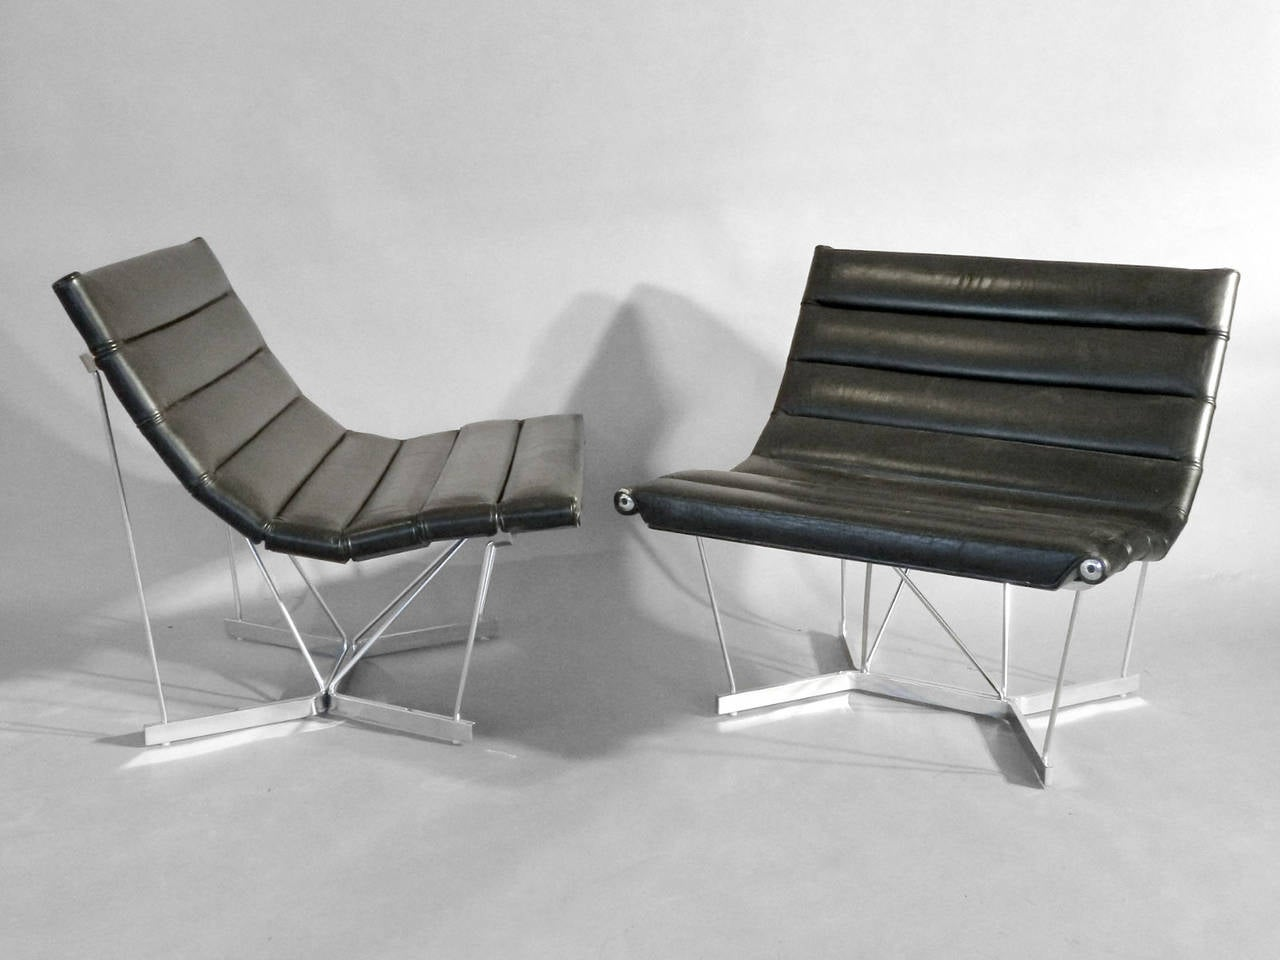 Pair of chairs by George Nelson for Herman Miller, white disc label.